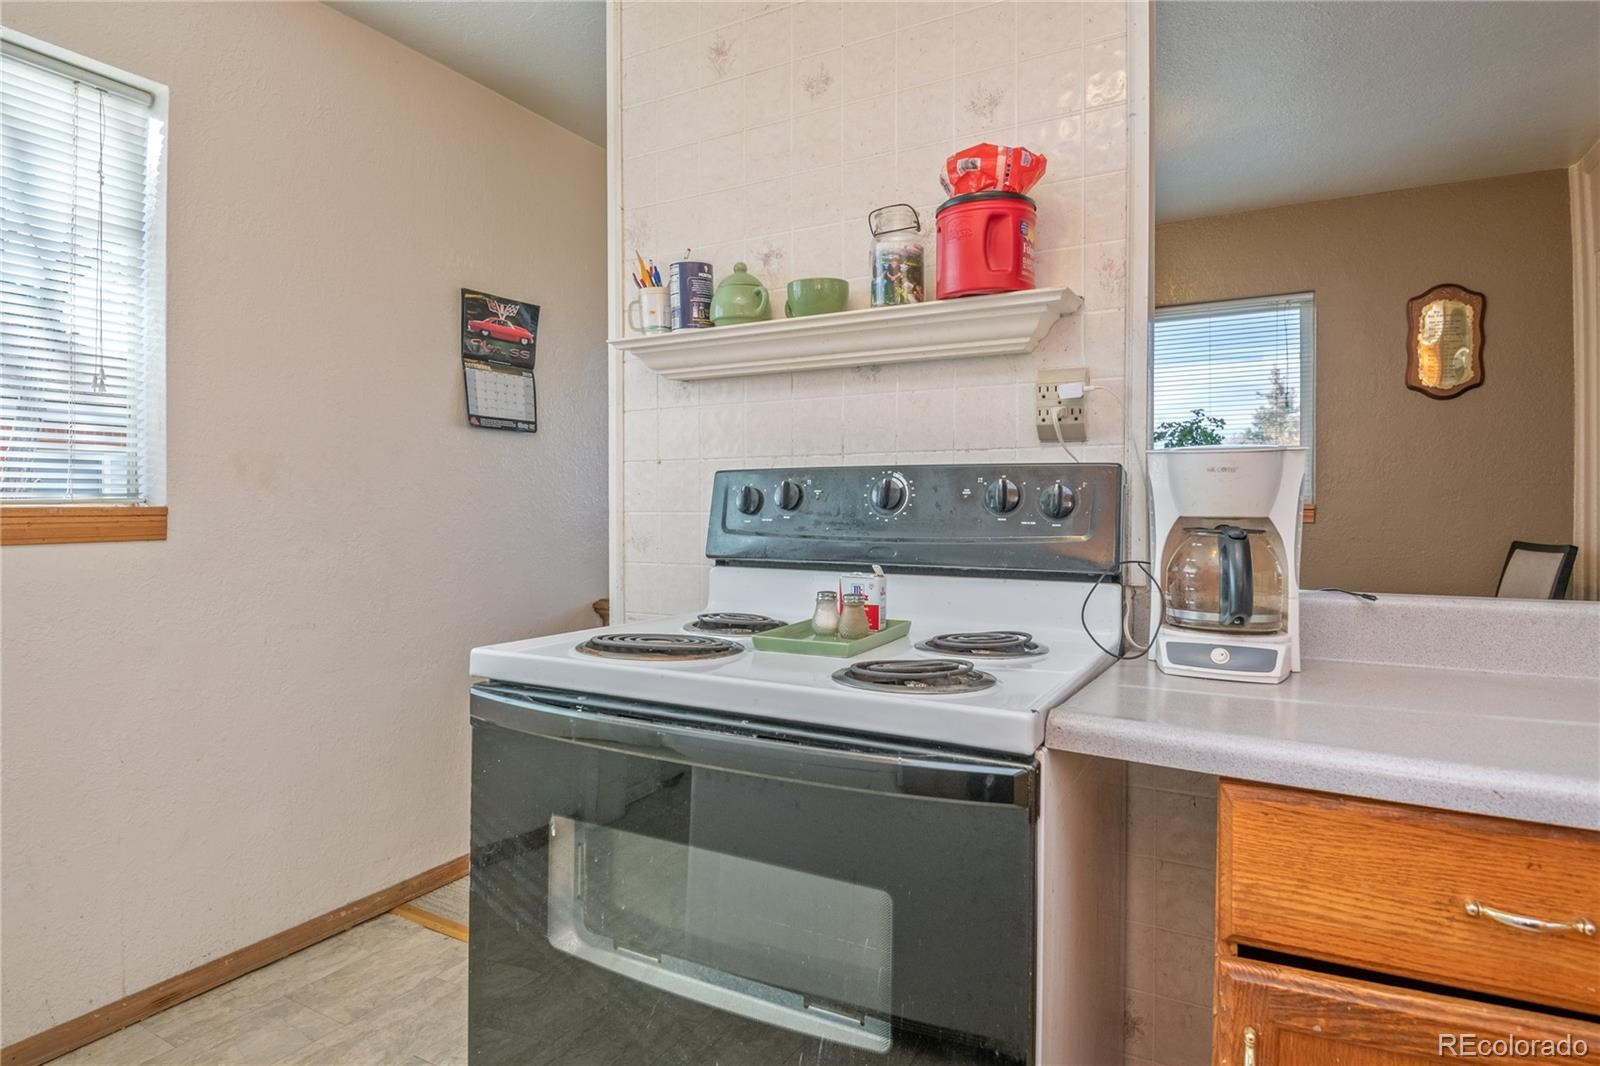 MLS# 4674292 - 6 - 8980 Hickory Place, Thornton, CO 80229